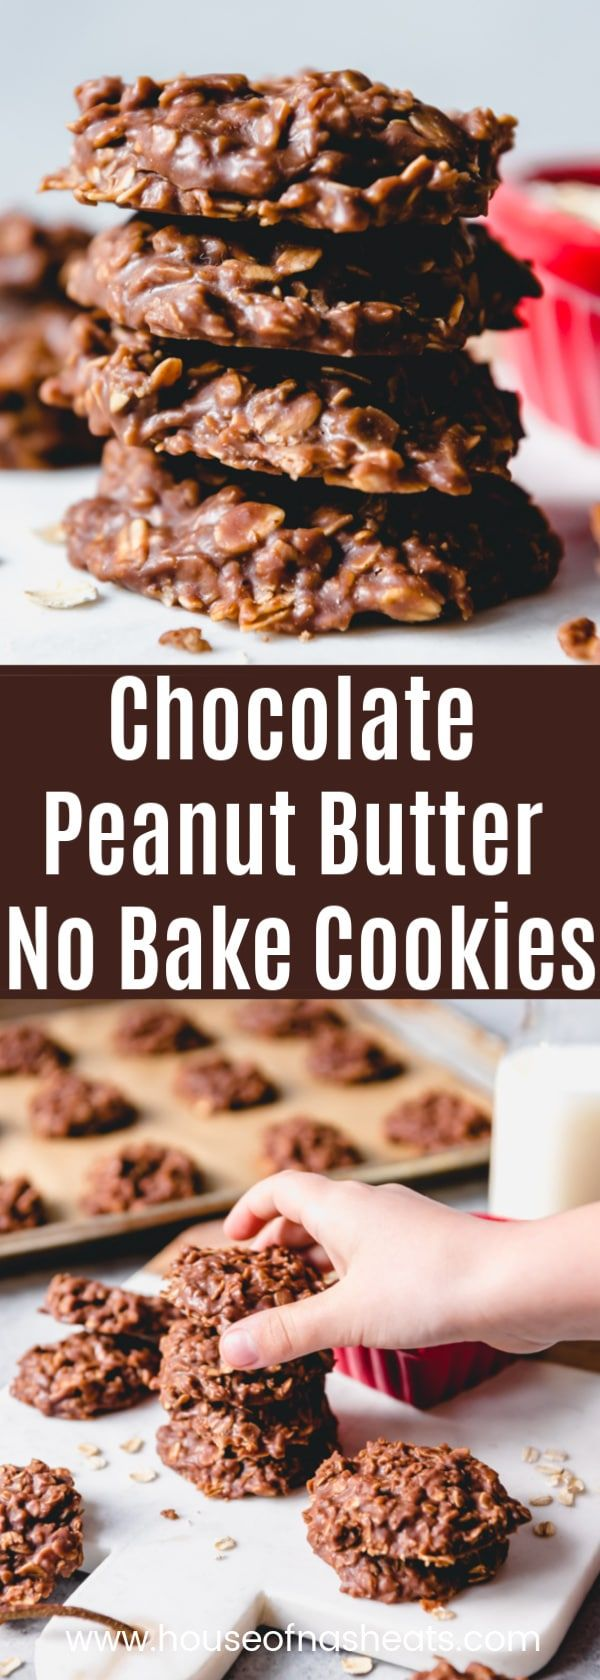 Chocolate Peanut Butter No Bake Cookies images